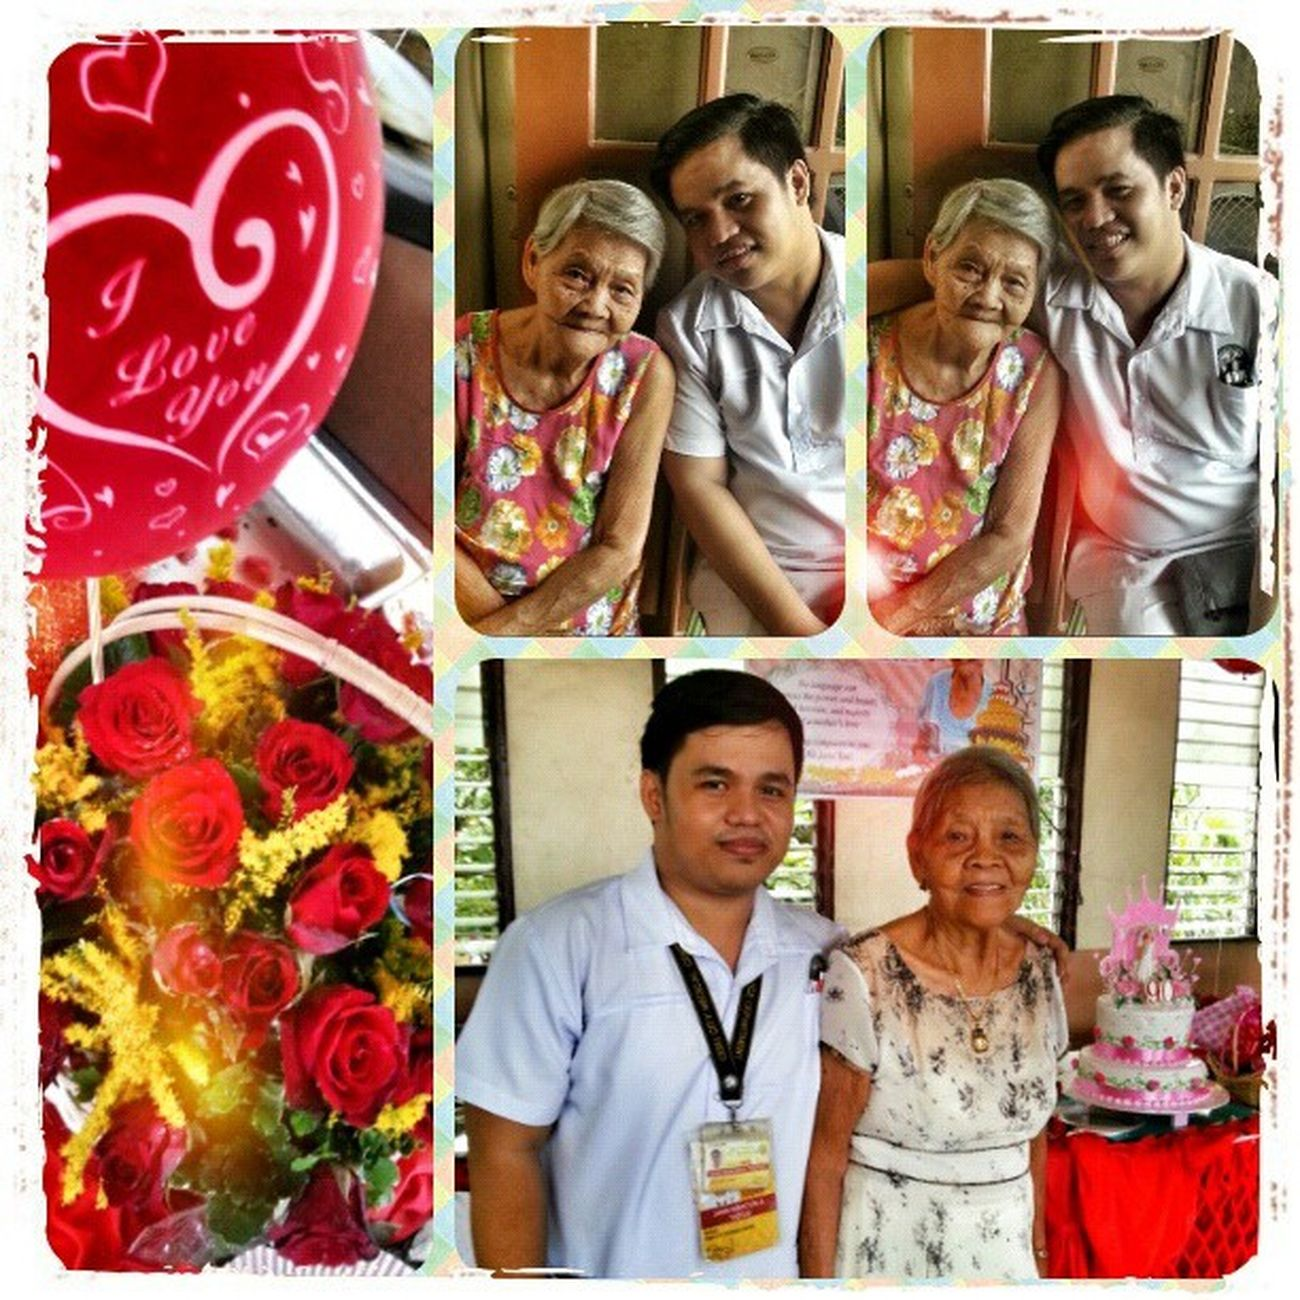 Happy Grandparents Day to the best Granny in th whole world! I am not who I am and where I am today if not because of you. I may not be vocal about this but do know that I am more than blessed to have you as my Lola and I love you! Grandparentsday Lolasday Lolosday Lolo lola happy seniorcitizen ignation igers igerscebu igersphilippines igersasia pleaselike TFLers TagsForLikes tagstagram instagramhub instafamous